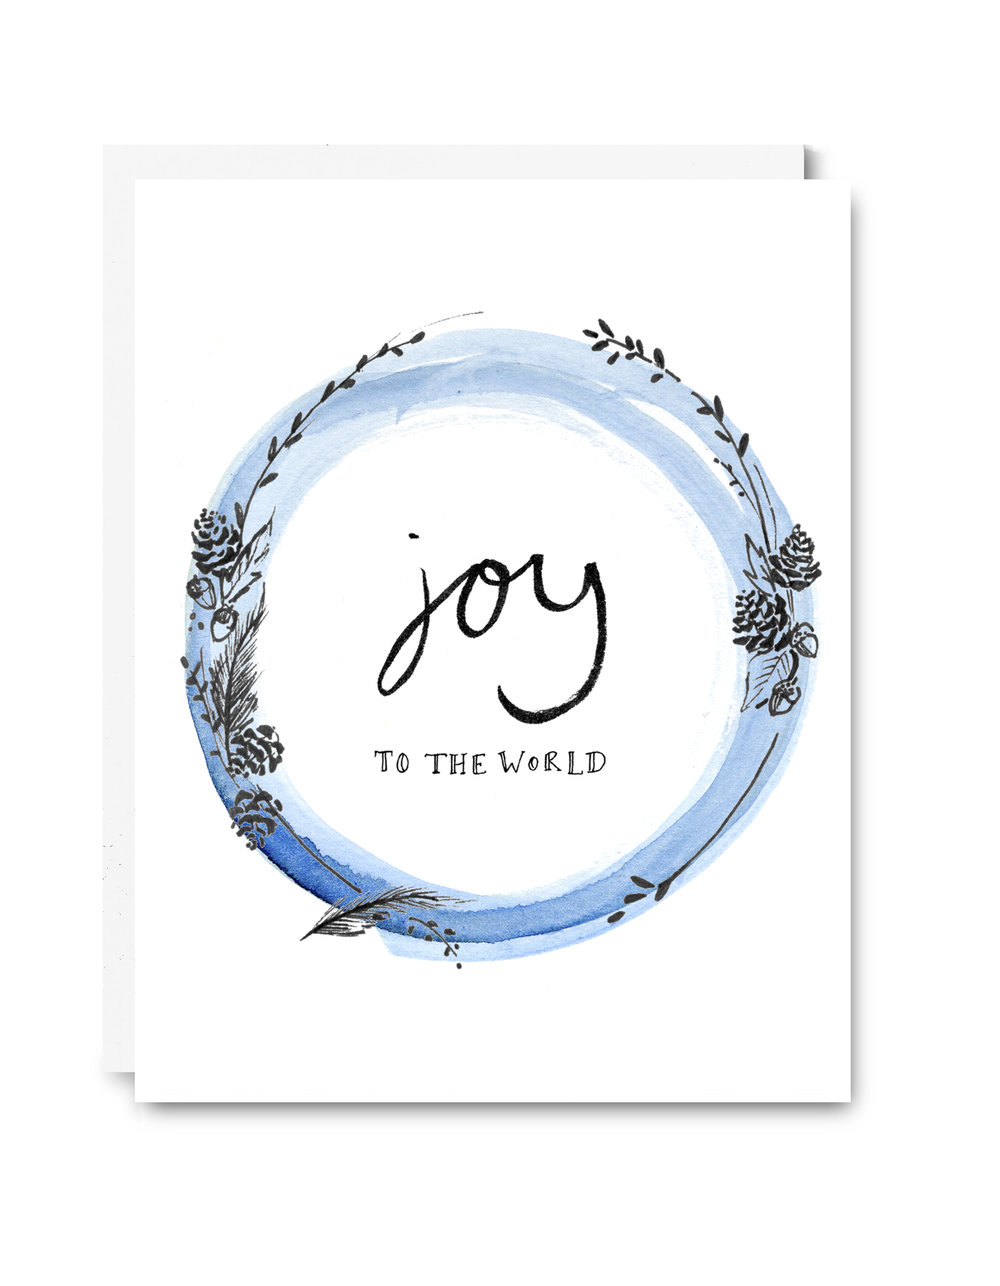 Joy to the World Card - $5.00